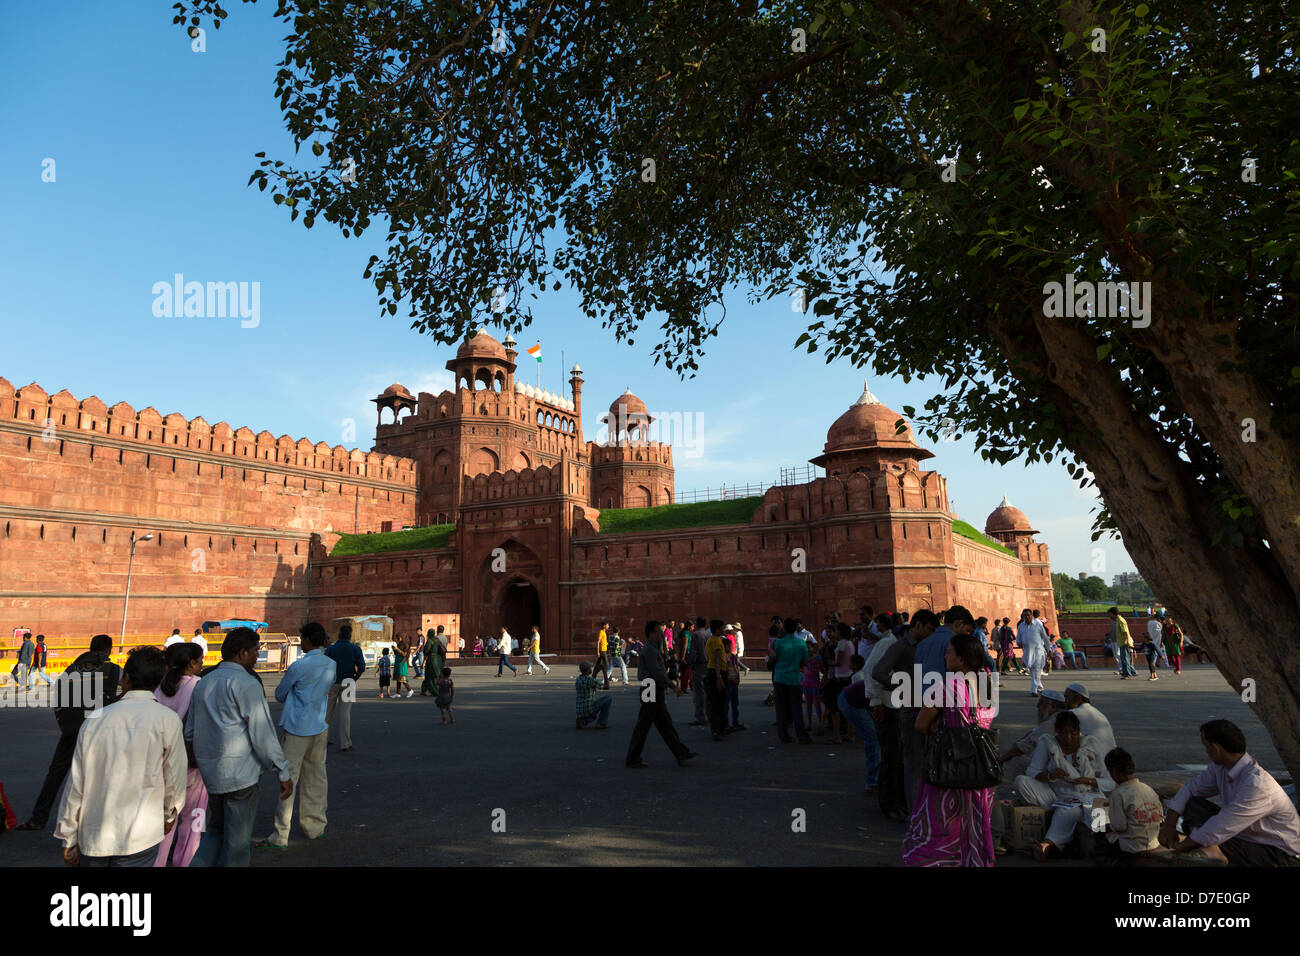 Tourists under a tree near the Red Fort in Dehli old town, India - Stock Image